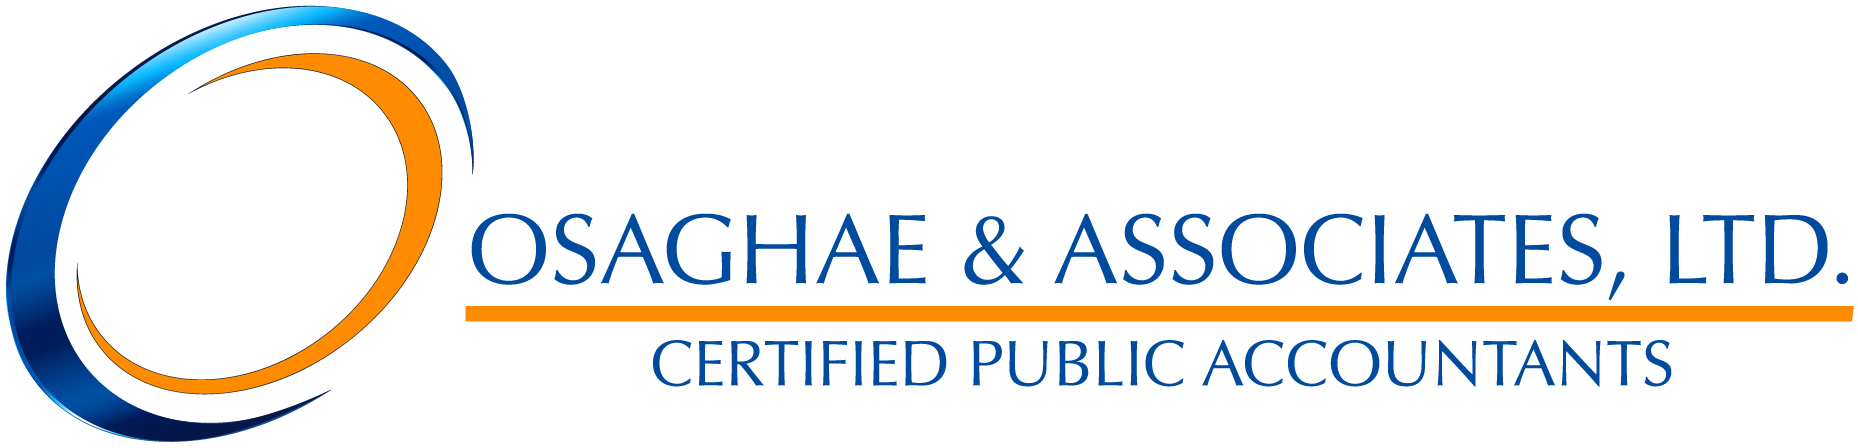 Chicago, Illinois Accounting Firm | Client Portal Page | Osaghae & Associates, Ltd.